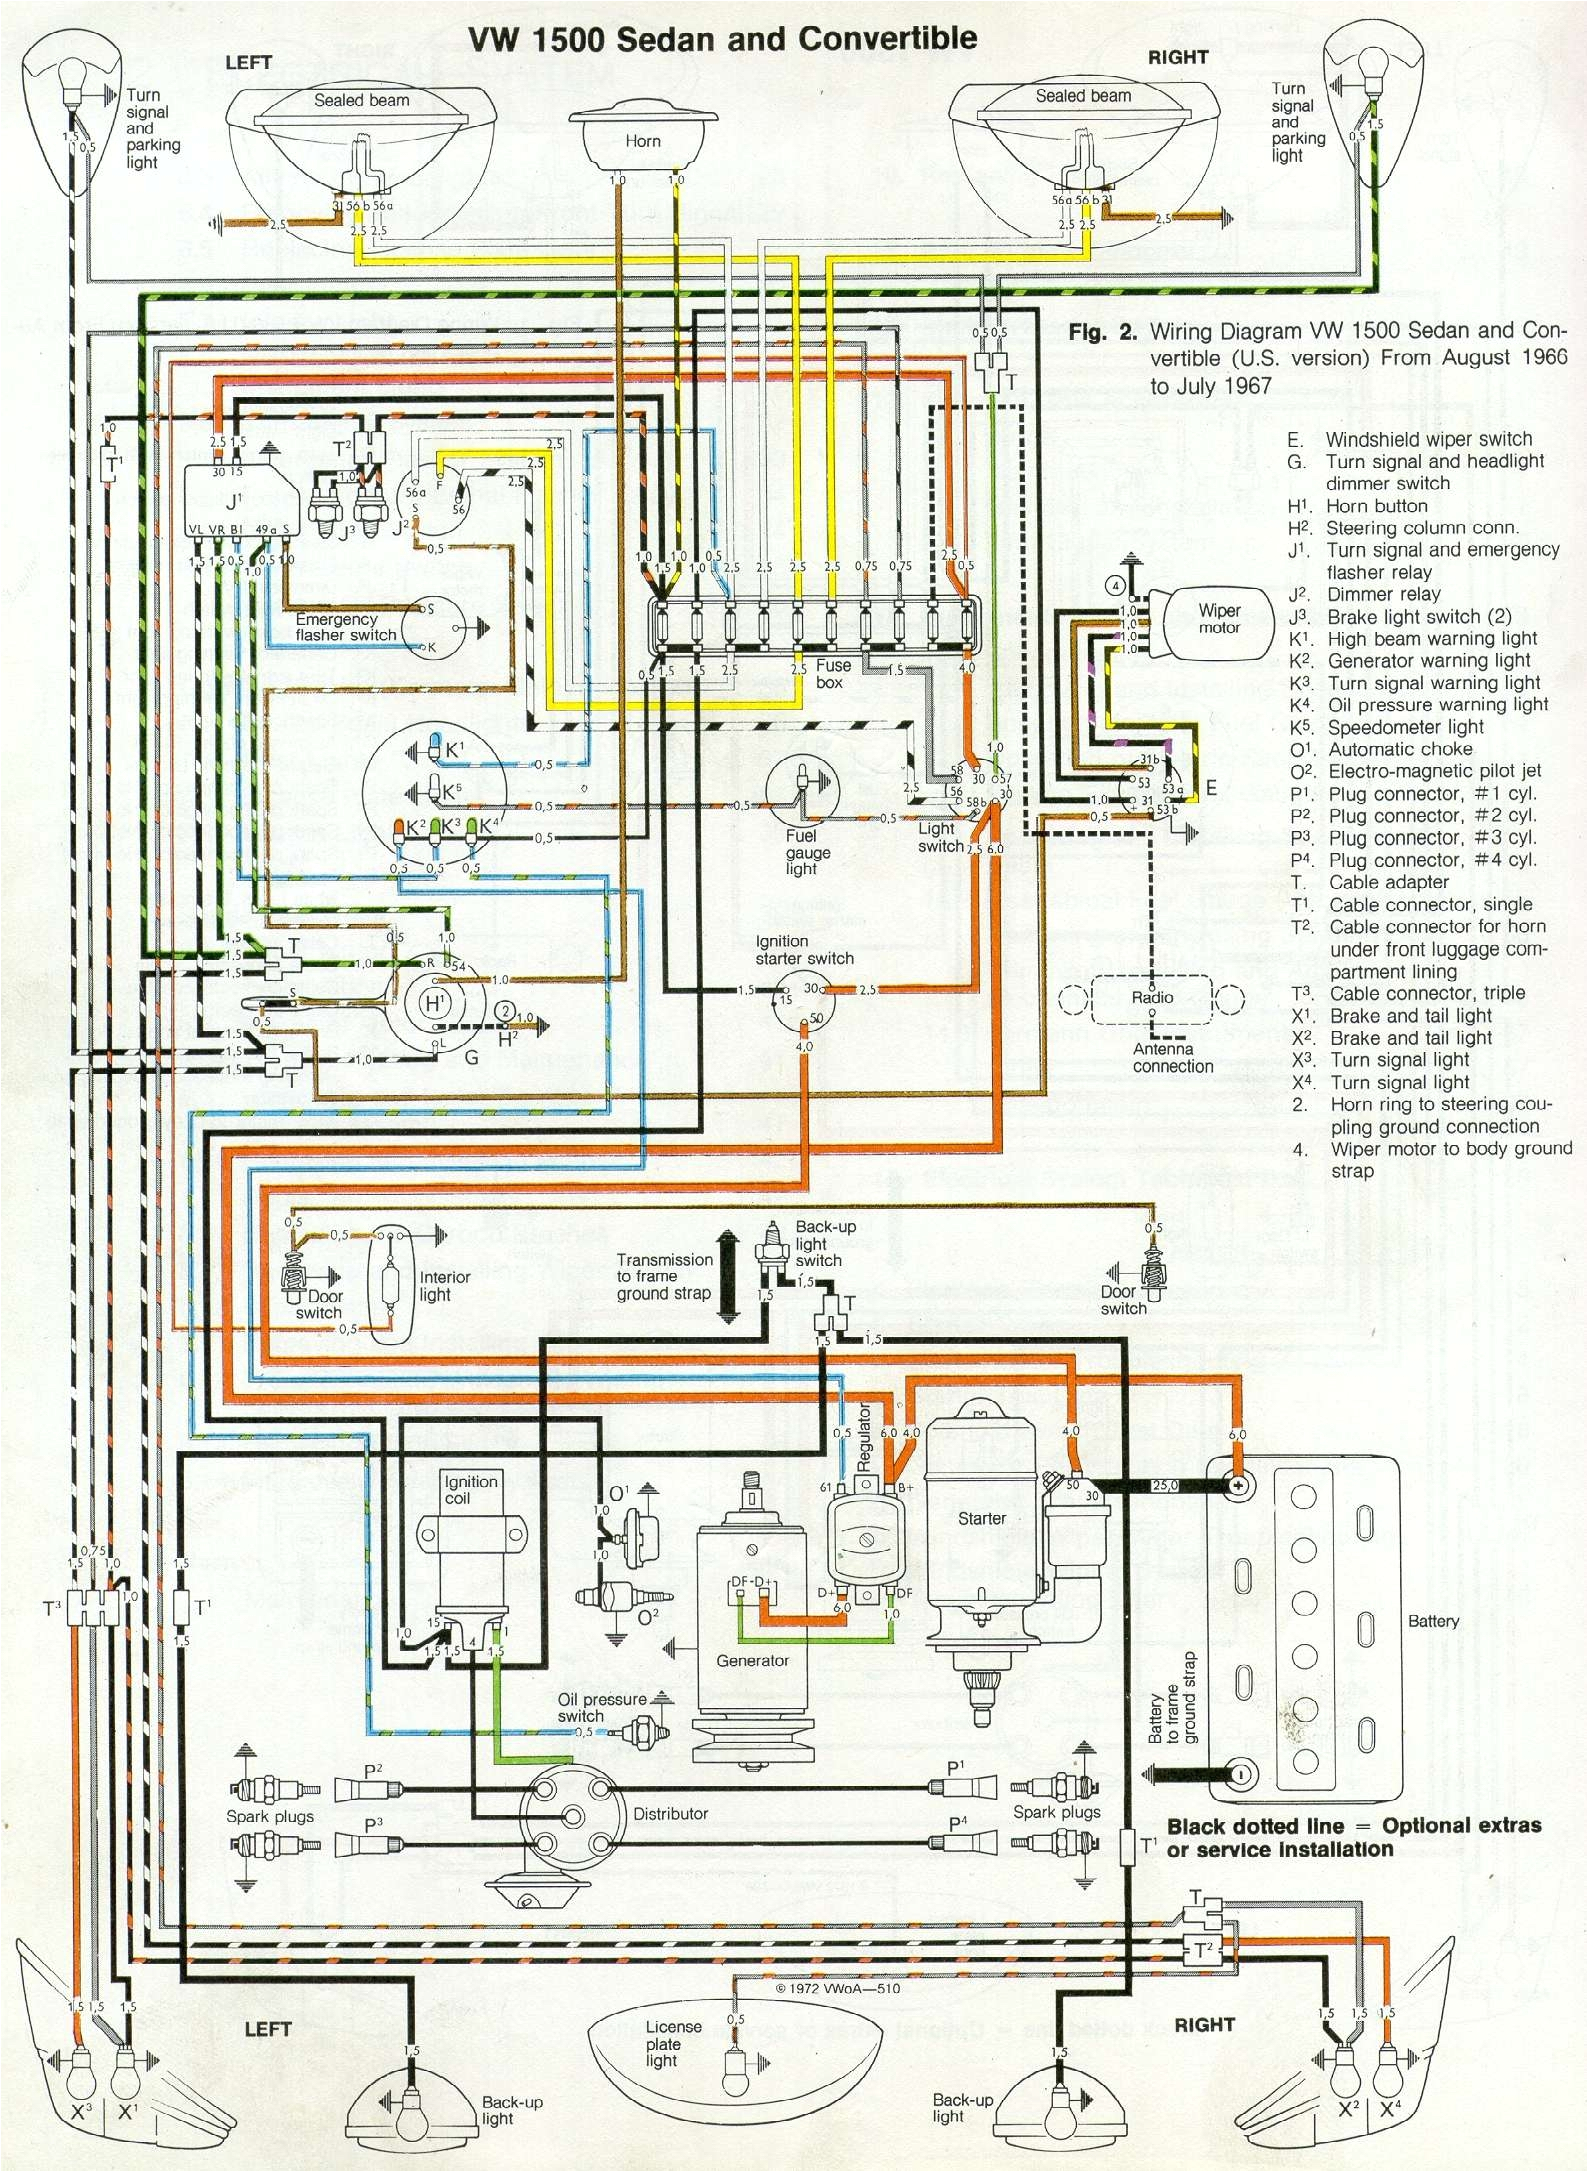 2003 Volkswagen Beetle Wiring Diagram Vw Bug Fuse Diagram Blog Wiring Diagram